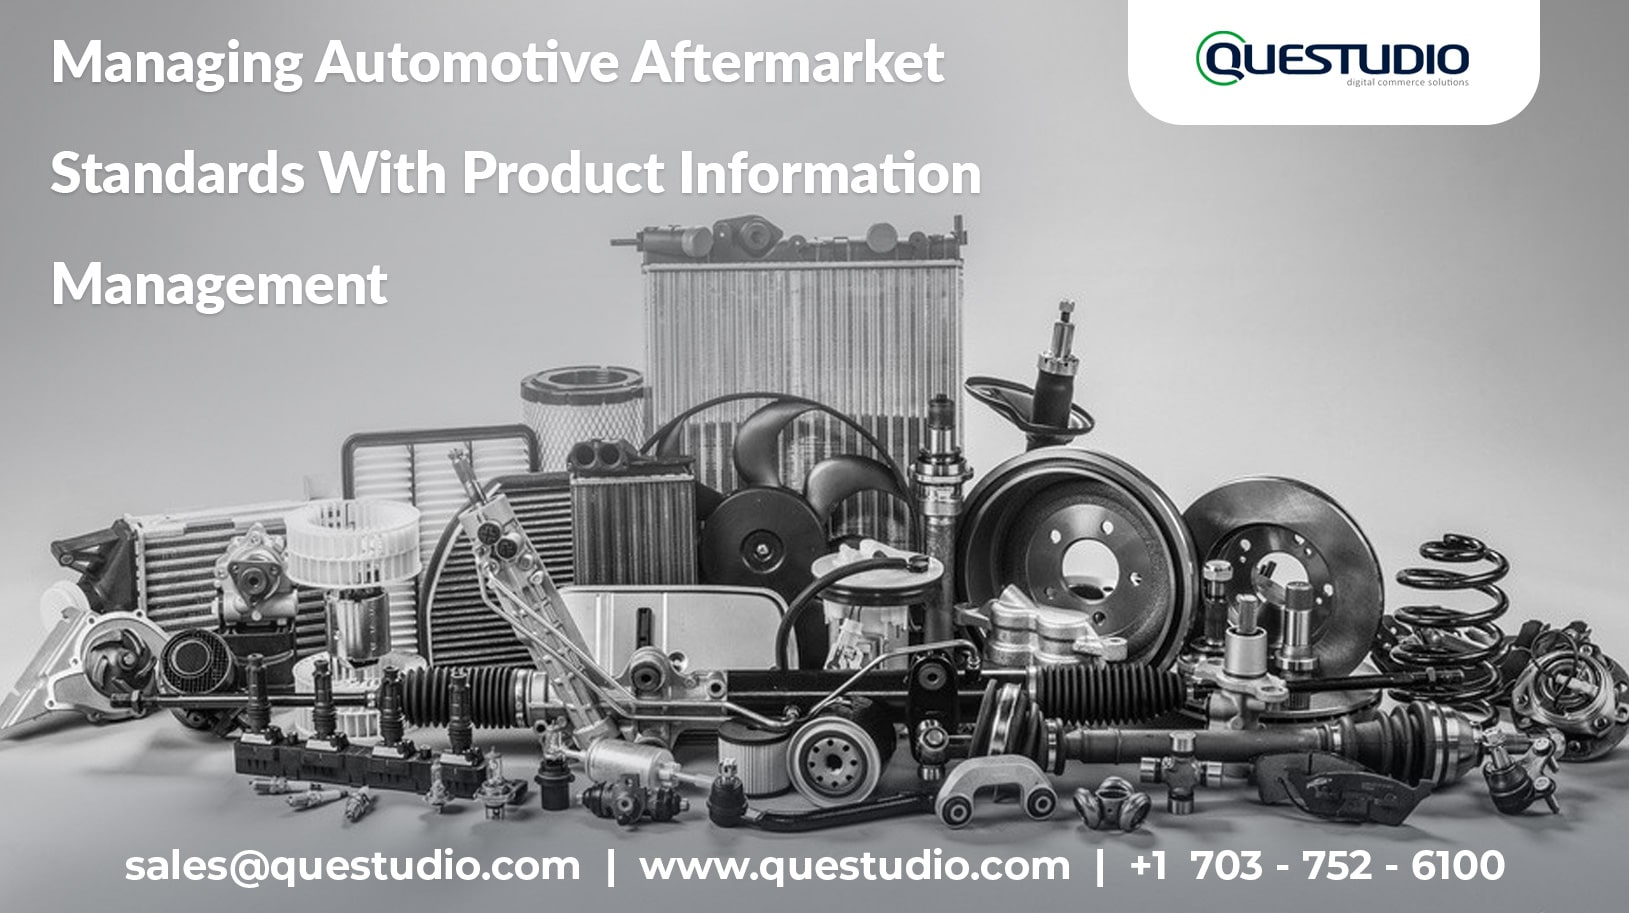 Managing Automotive Aftermarket Standards With Product Information Management